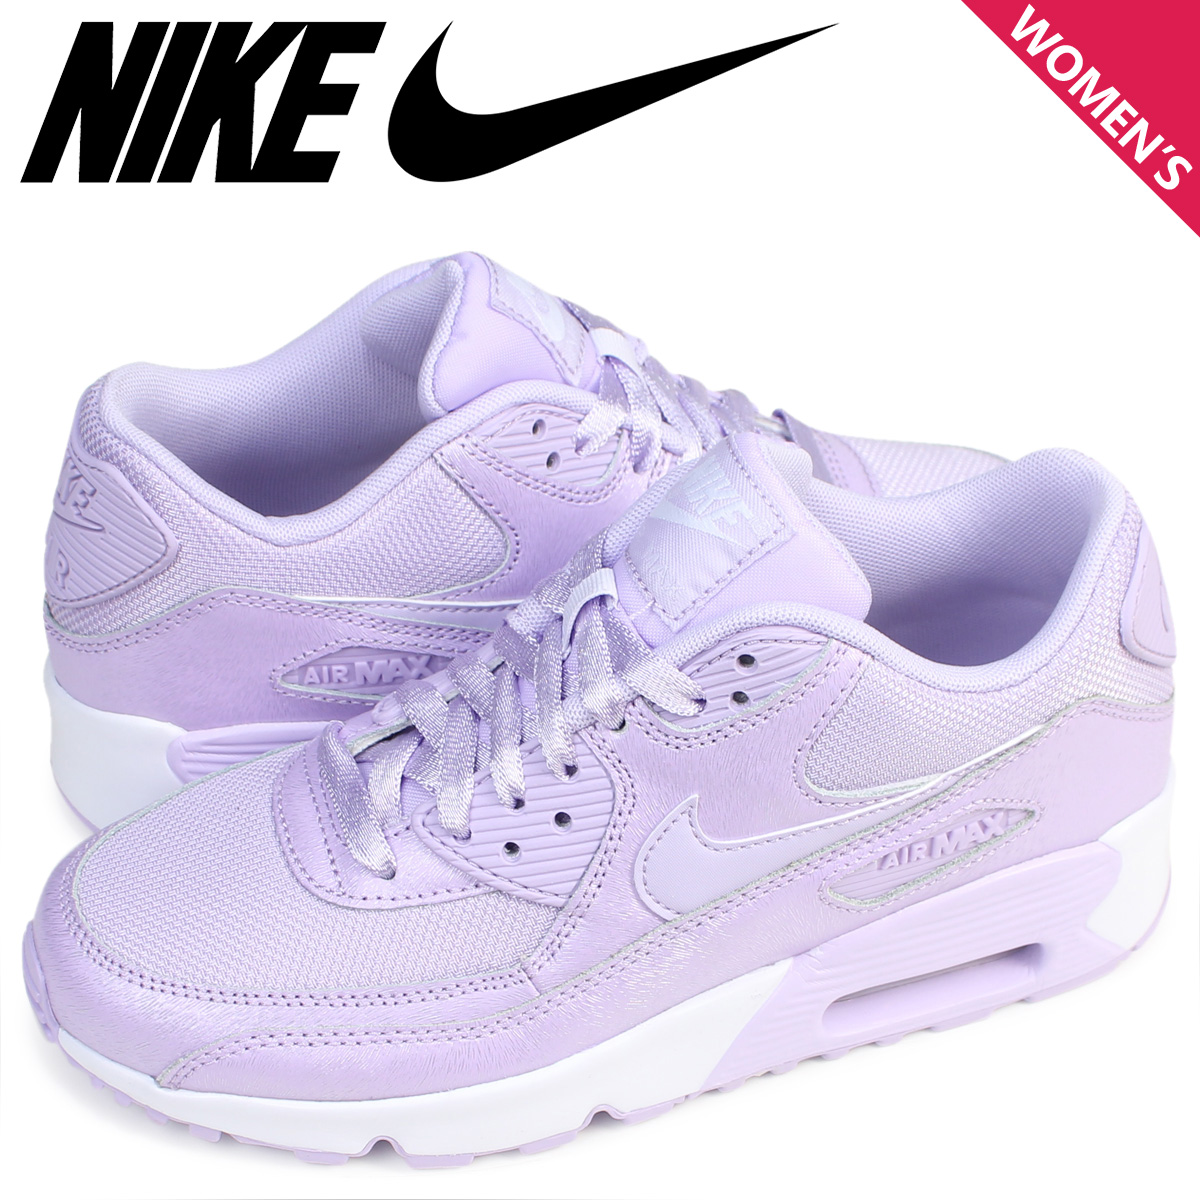 Nike NIKE Air Max 90 Lady's sneakers AIR MAX 90 SE MESH GS 880,305 500 shoes purple [727 Shinnyu load]